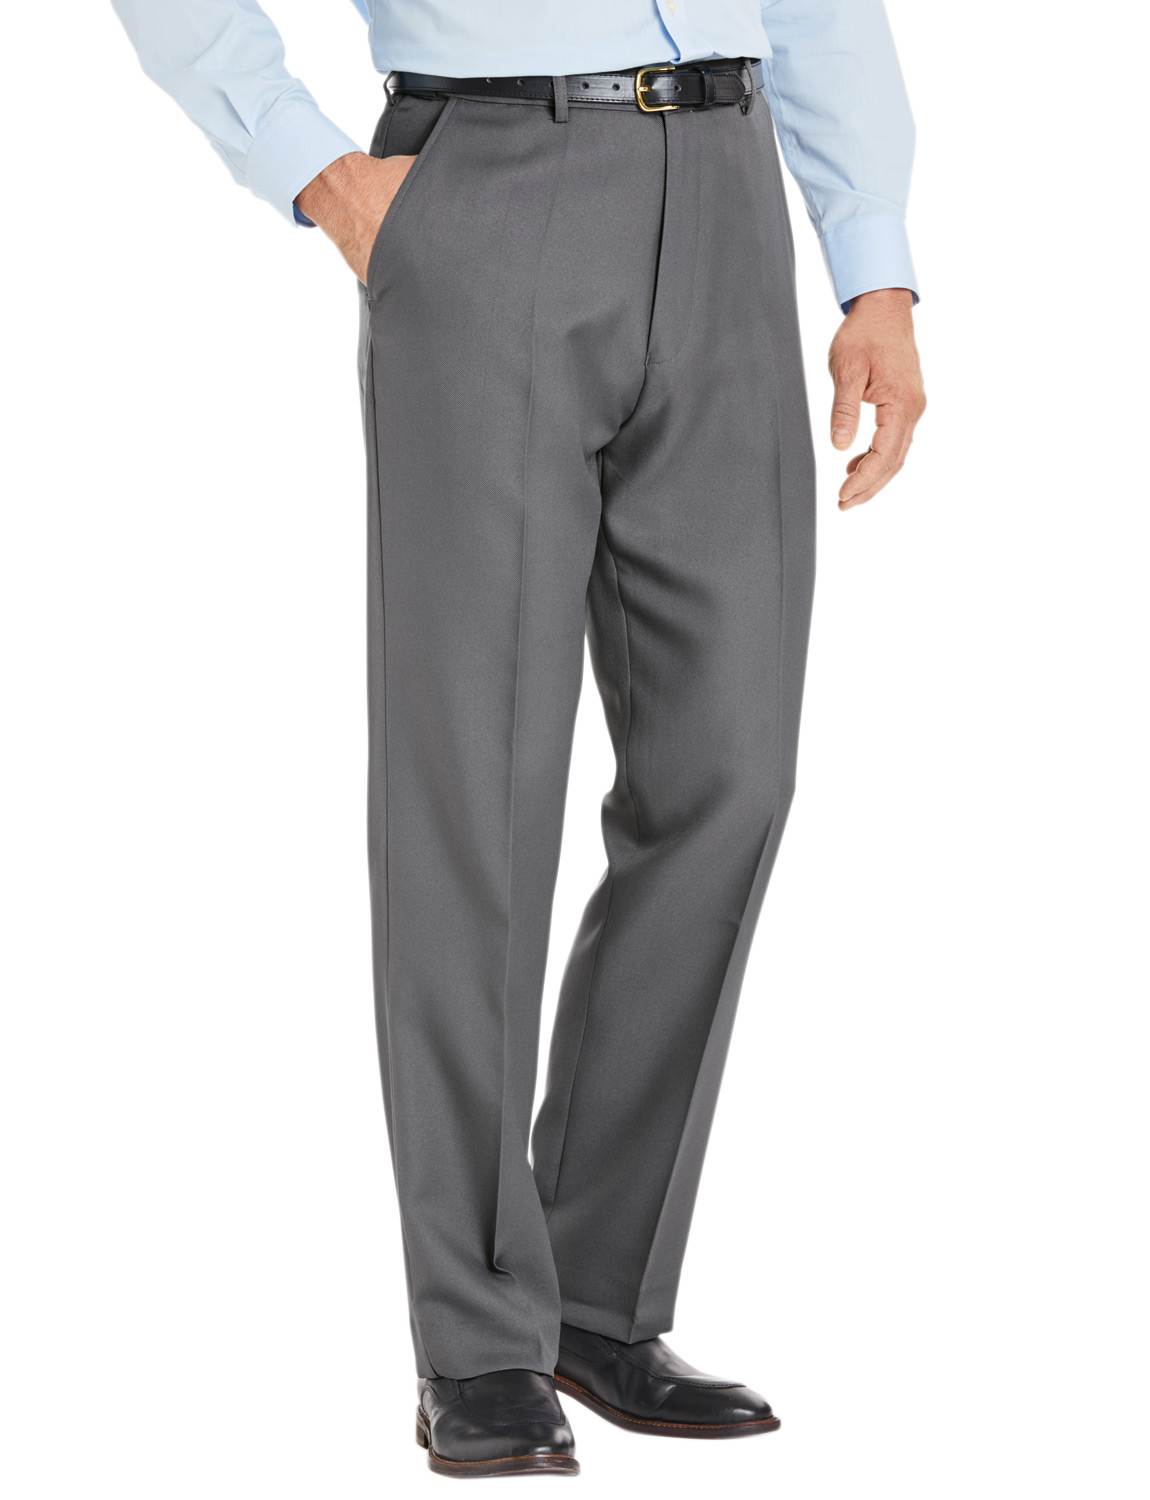 6ede306d74f Mens Chums HIGH-RISE Poly Twill Trouser Pants With Stretch Waist